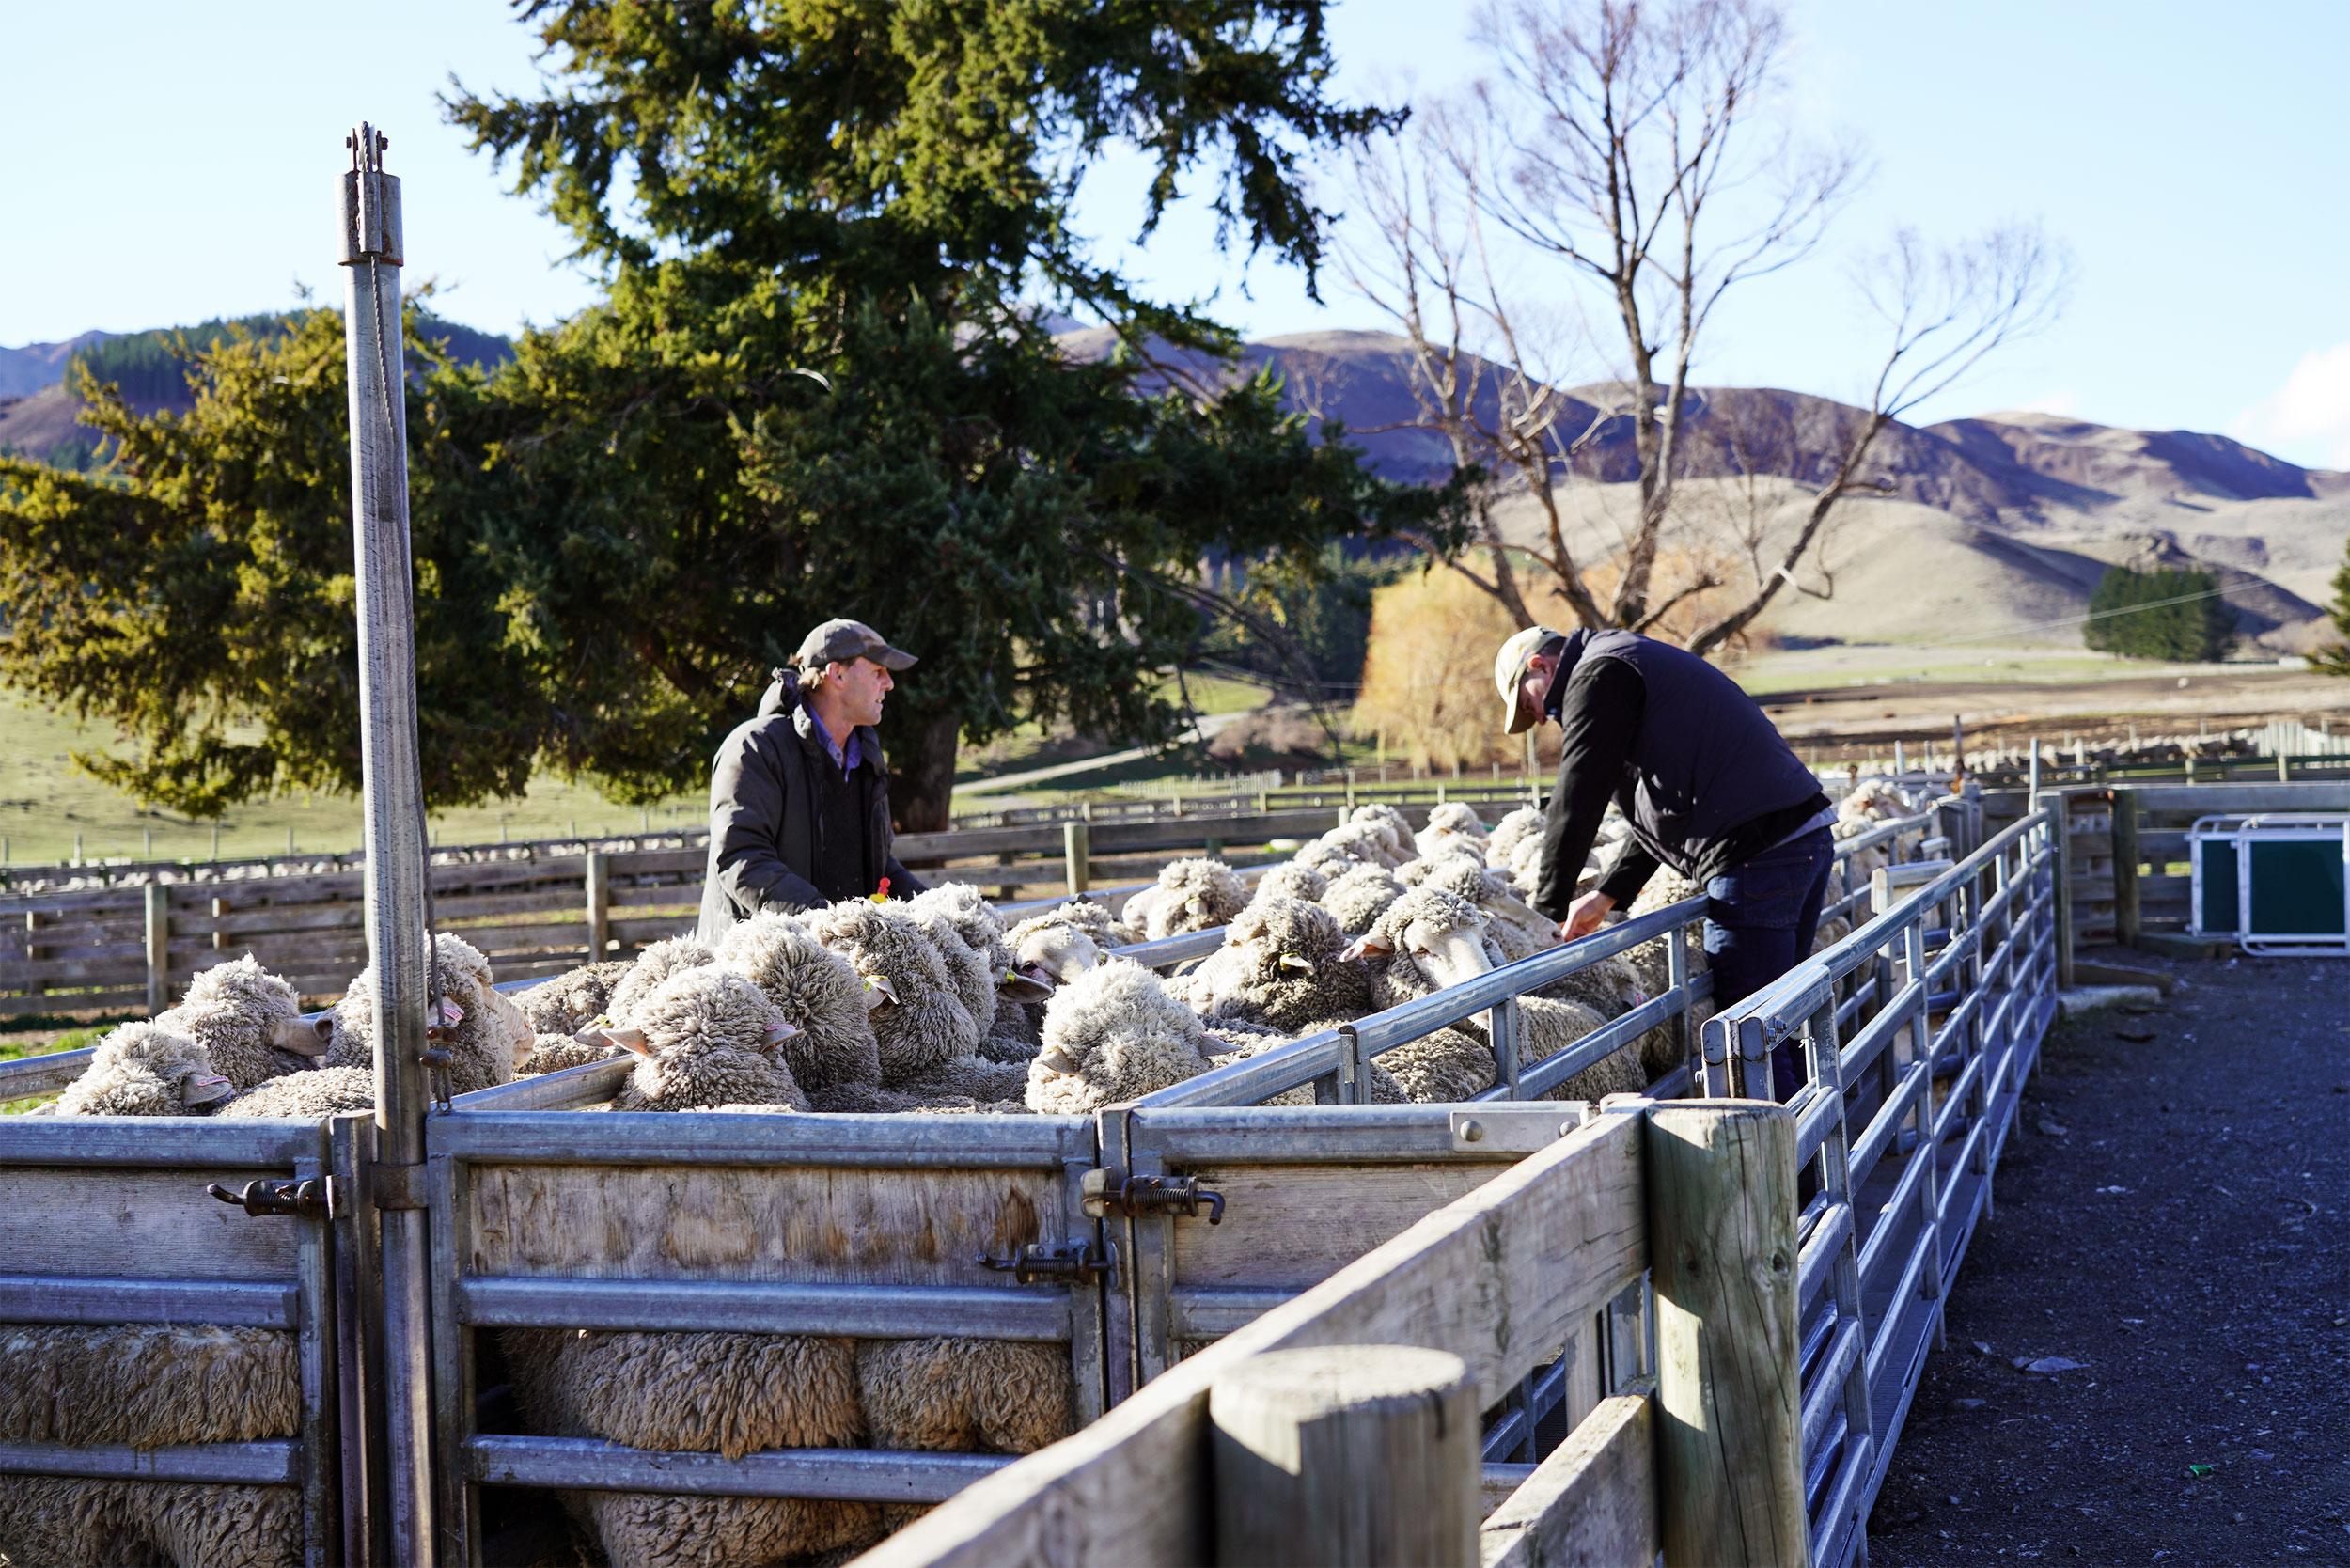 Sheep farmers measuring the condition score of a flock of sheep